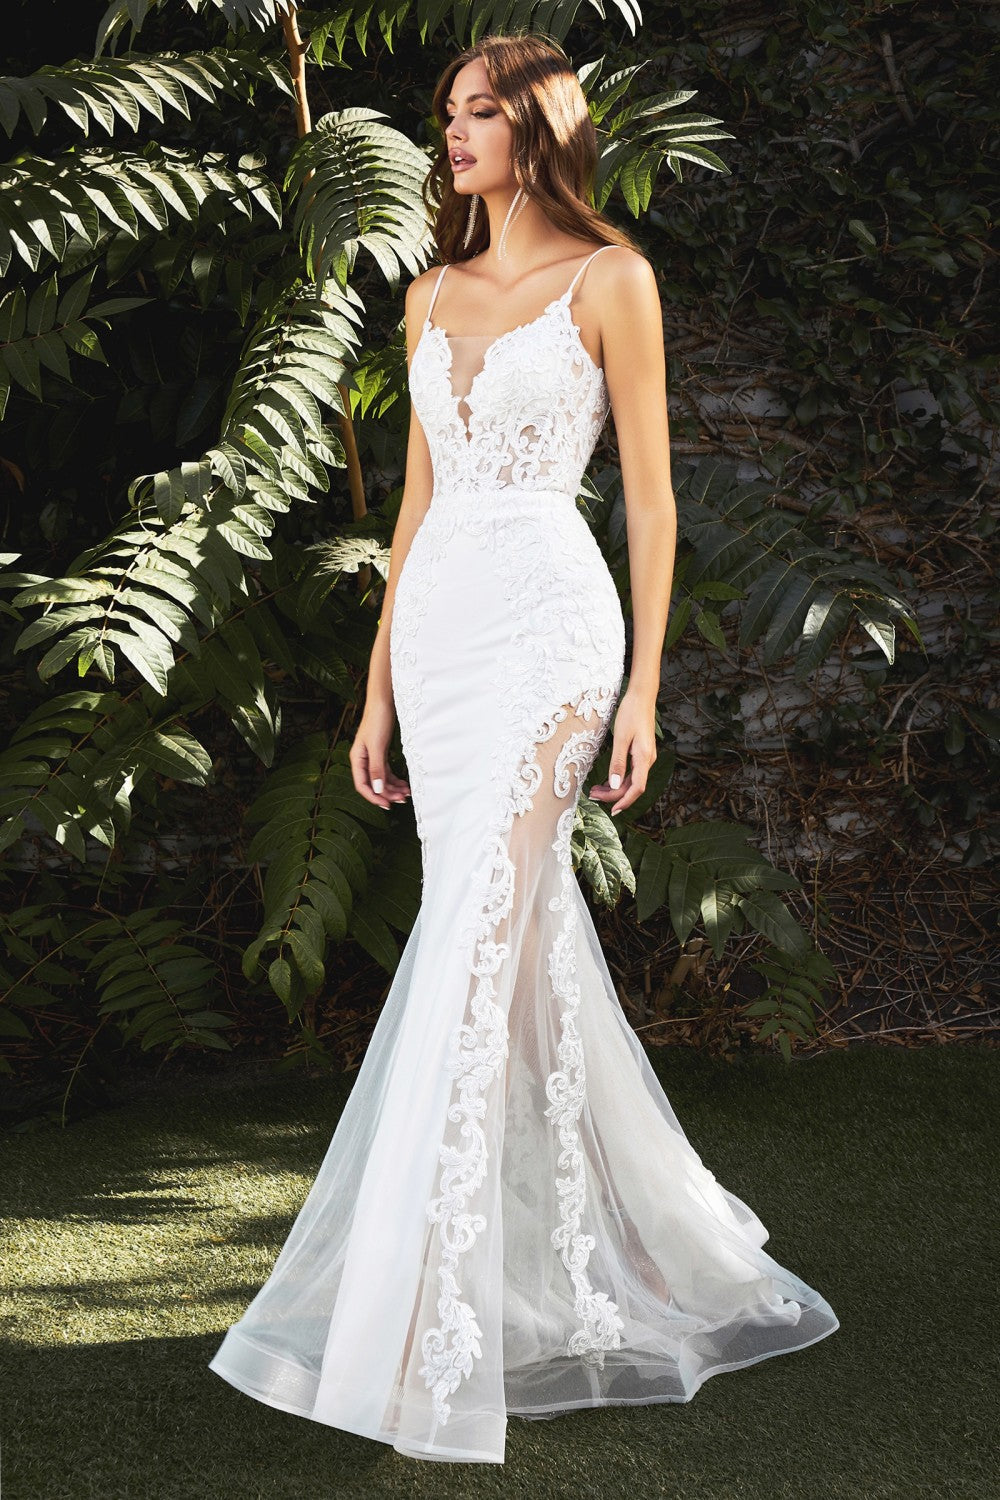 Ella Wedding Dress Sexy Sheer Side Skirt Gown C-937-THR-OffWhite Sample in Store